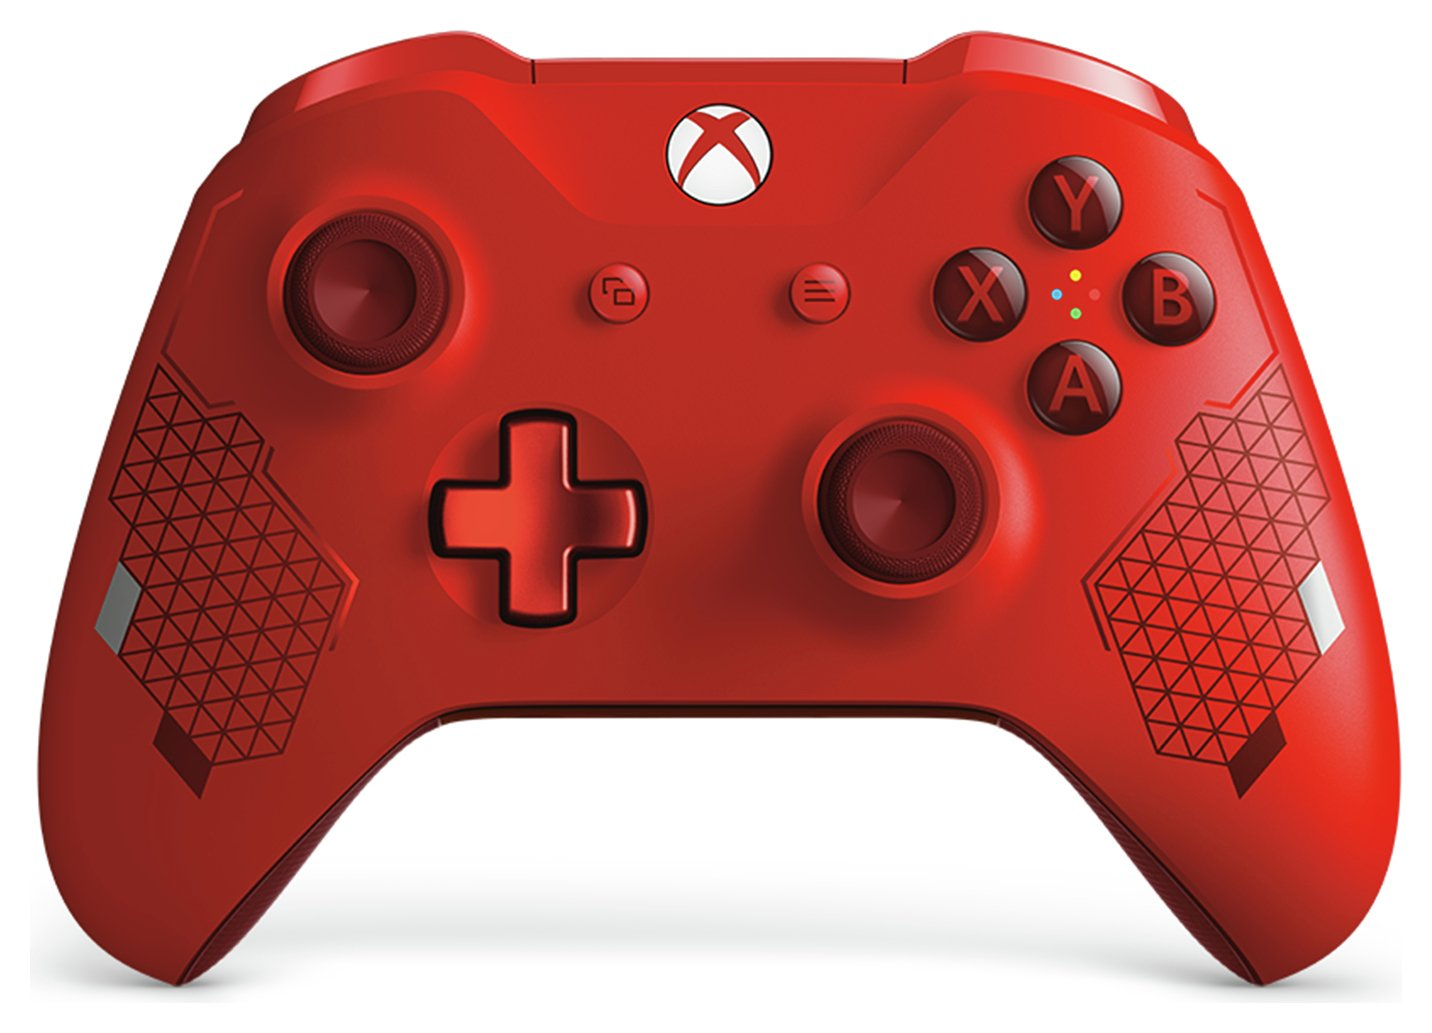 Official Xbox One Wireless Controller -Sport Red review